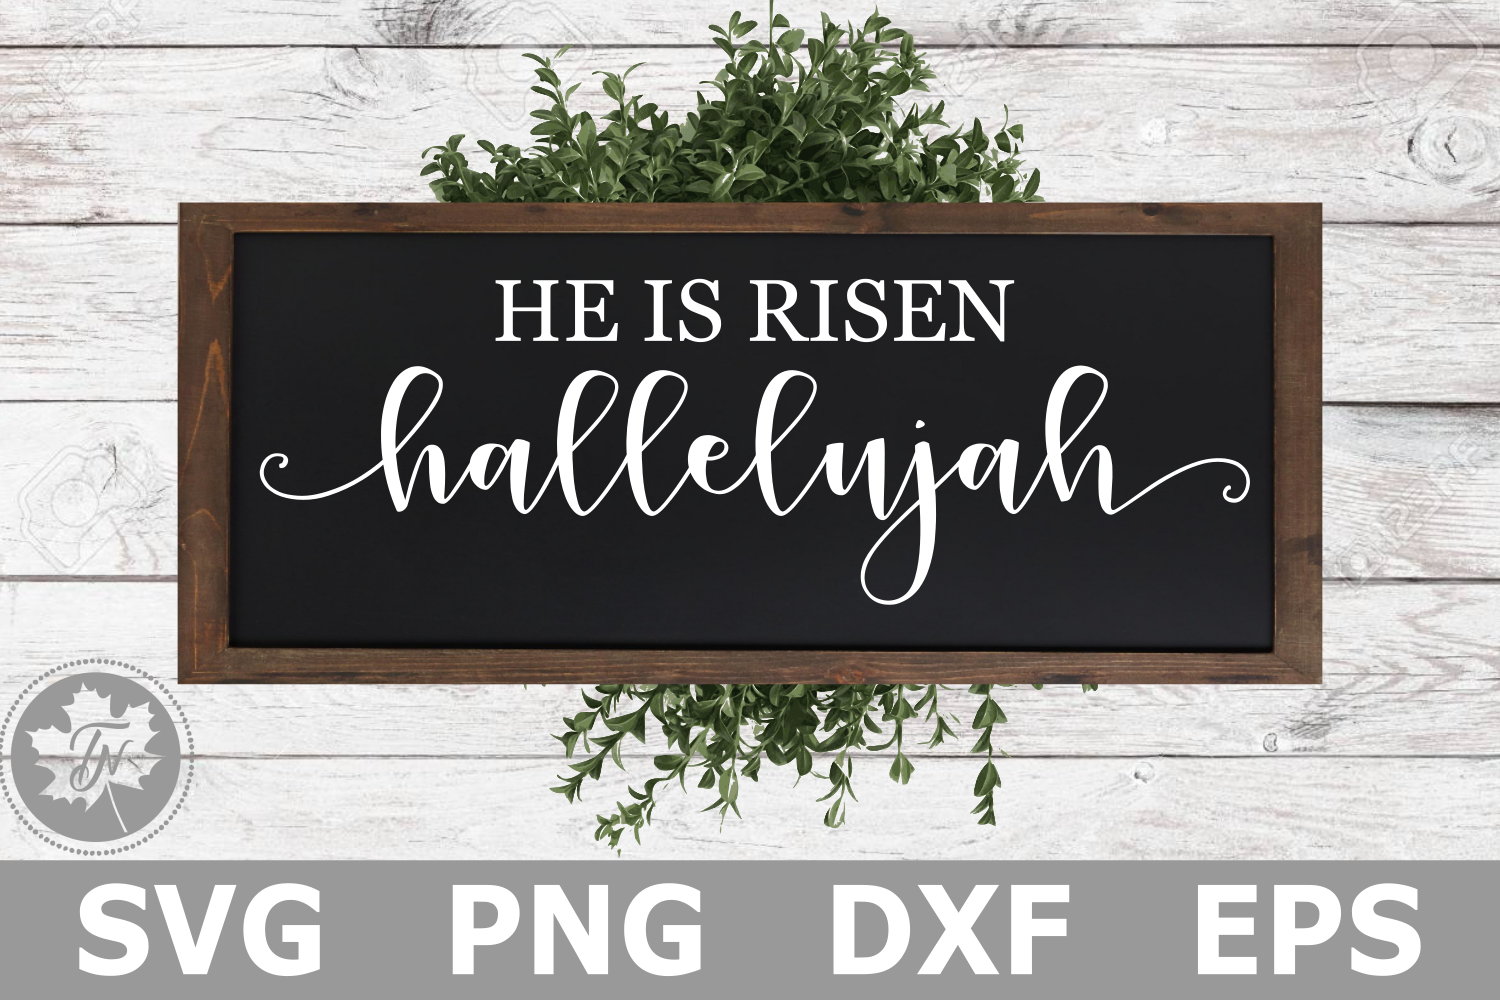 He is Risen Hallelujah - A Religious SVG Cut File example image 1